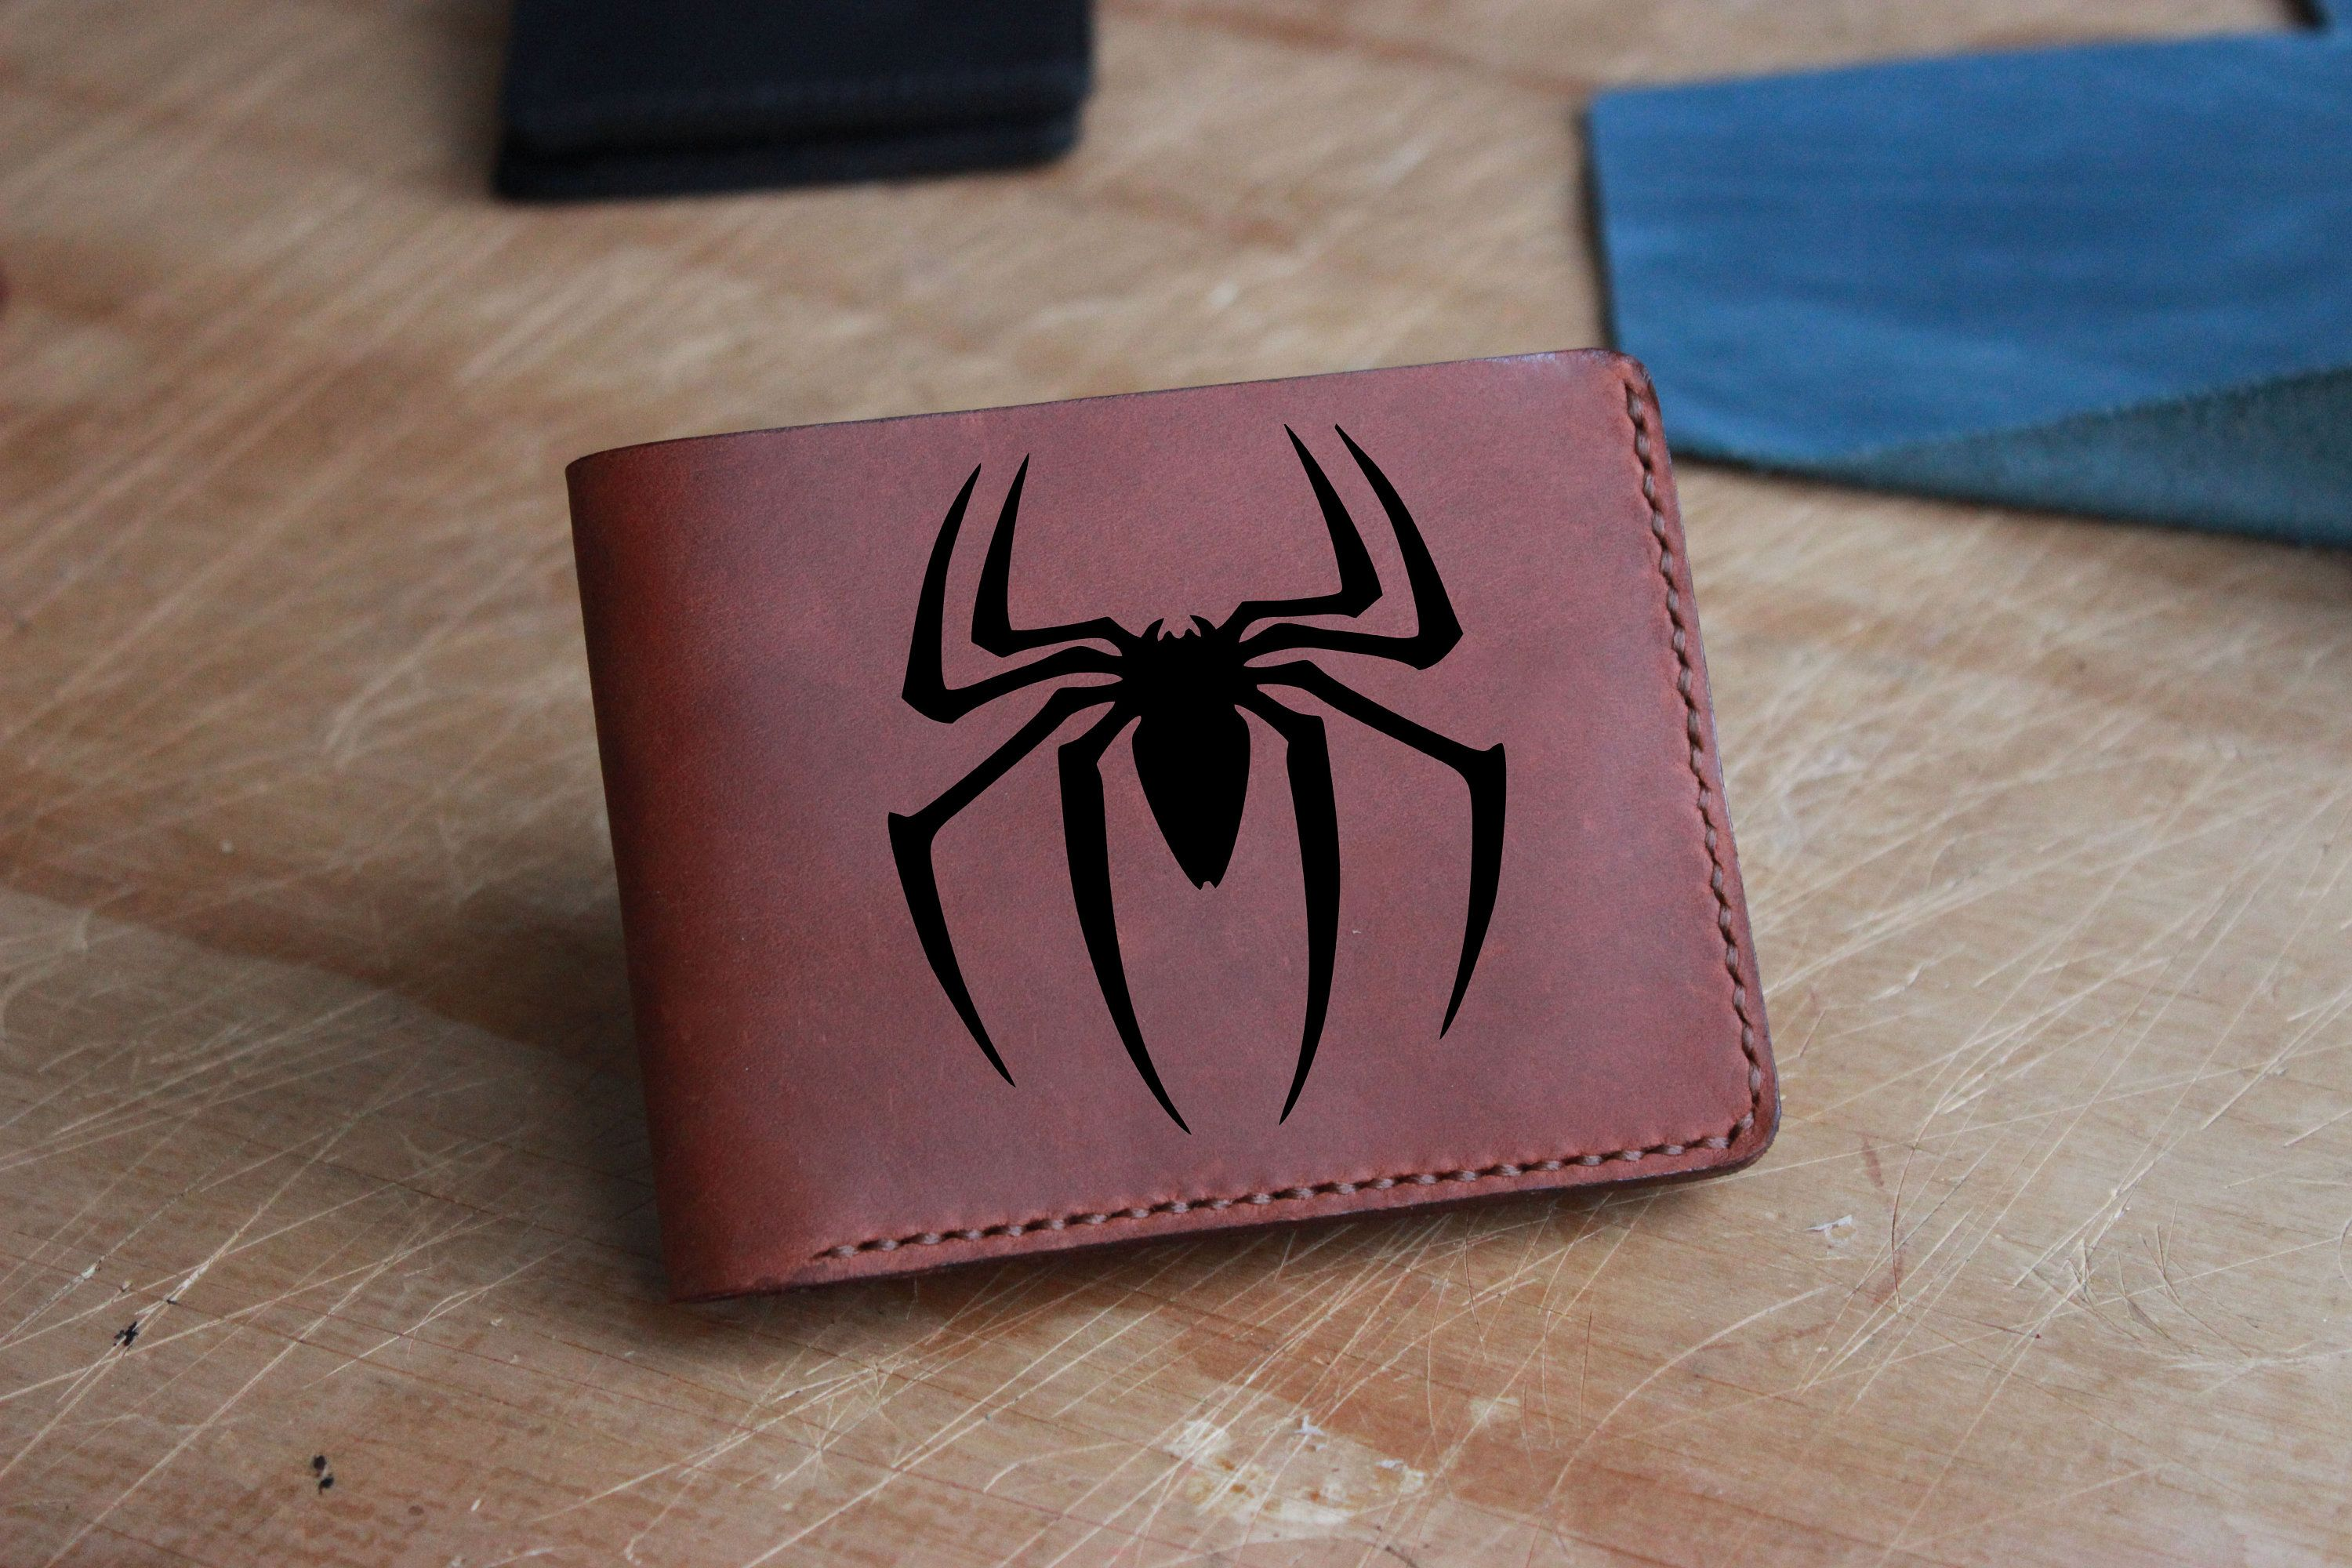 Spiderman wallet,Leather handmade men wallet,Personalized men gift,gift for him,Peter Parker,groom gift,boyfriend gift,Superhero gift,Unisex #superherogifts